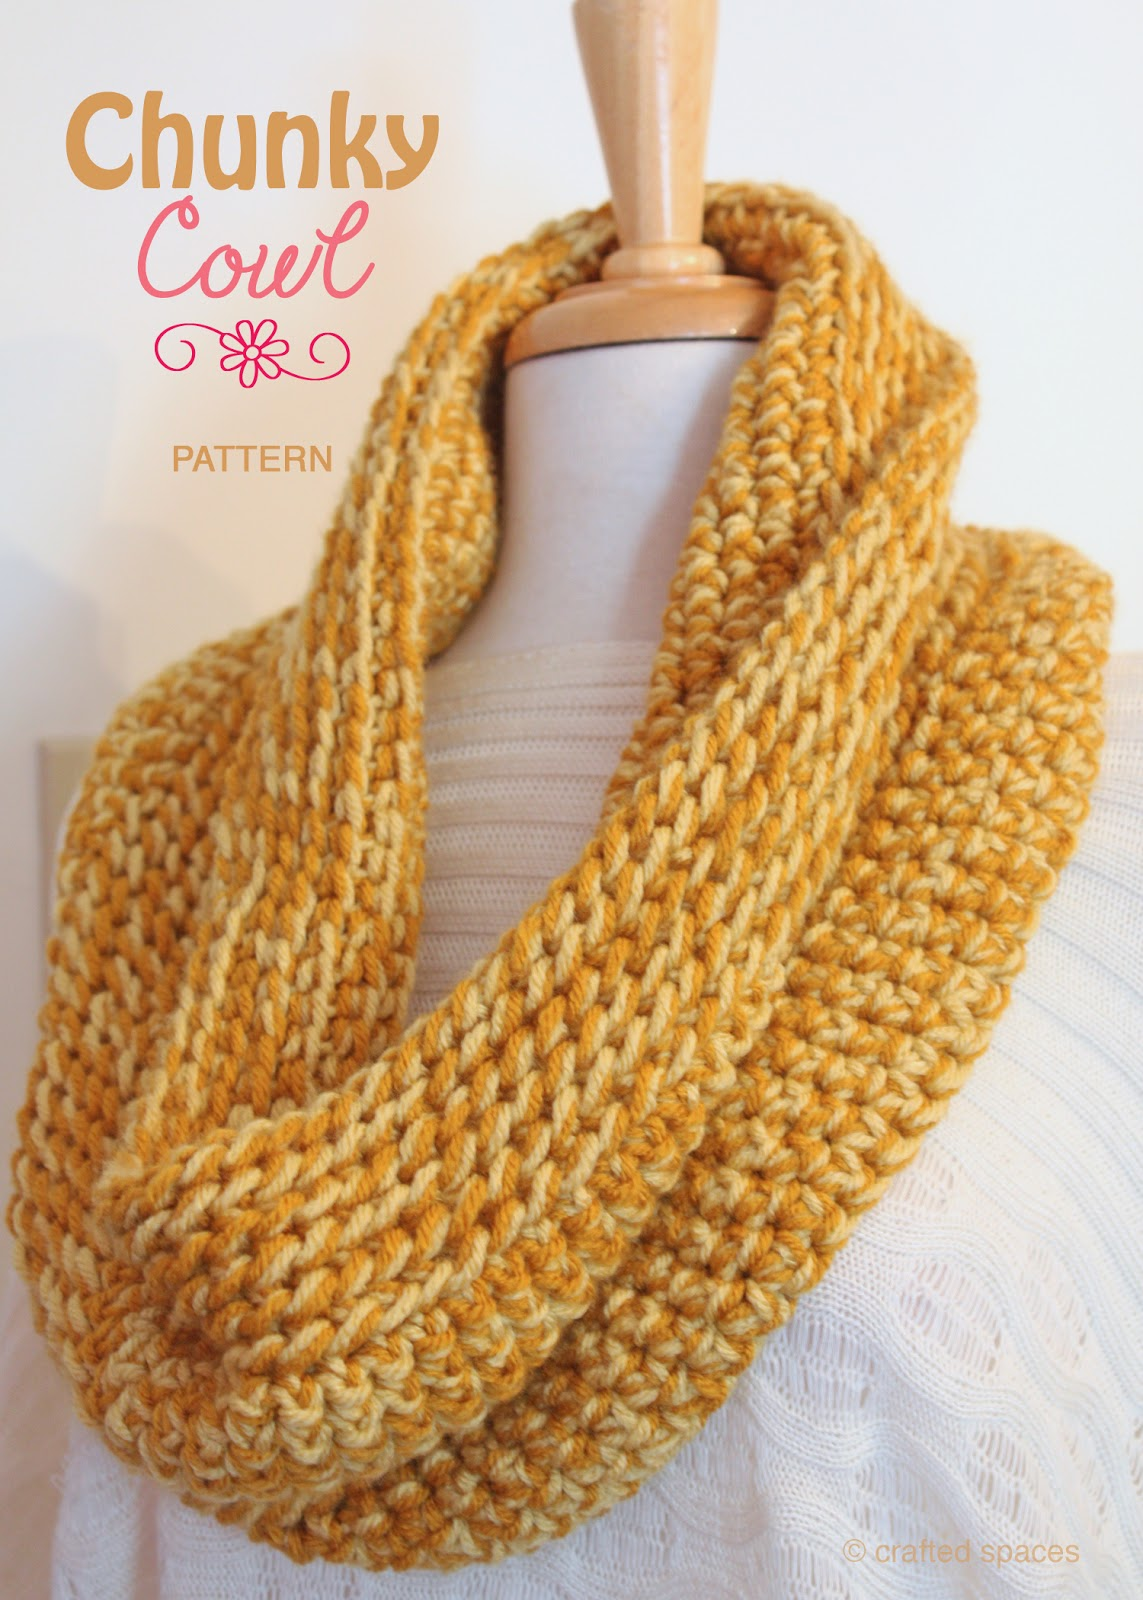 Crochet Patterns Using Chunky Yarn : Crafted Spaces: Chunky Cowl